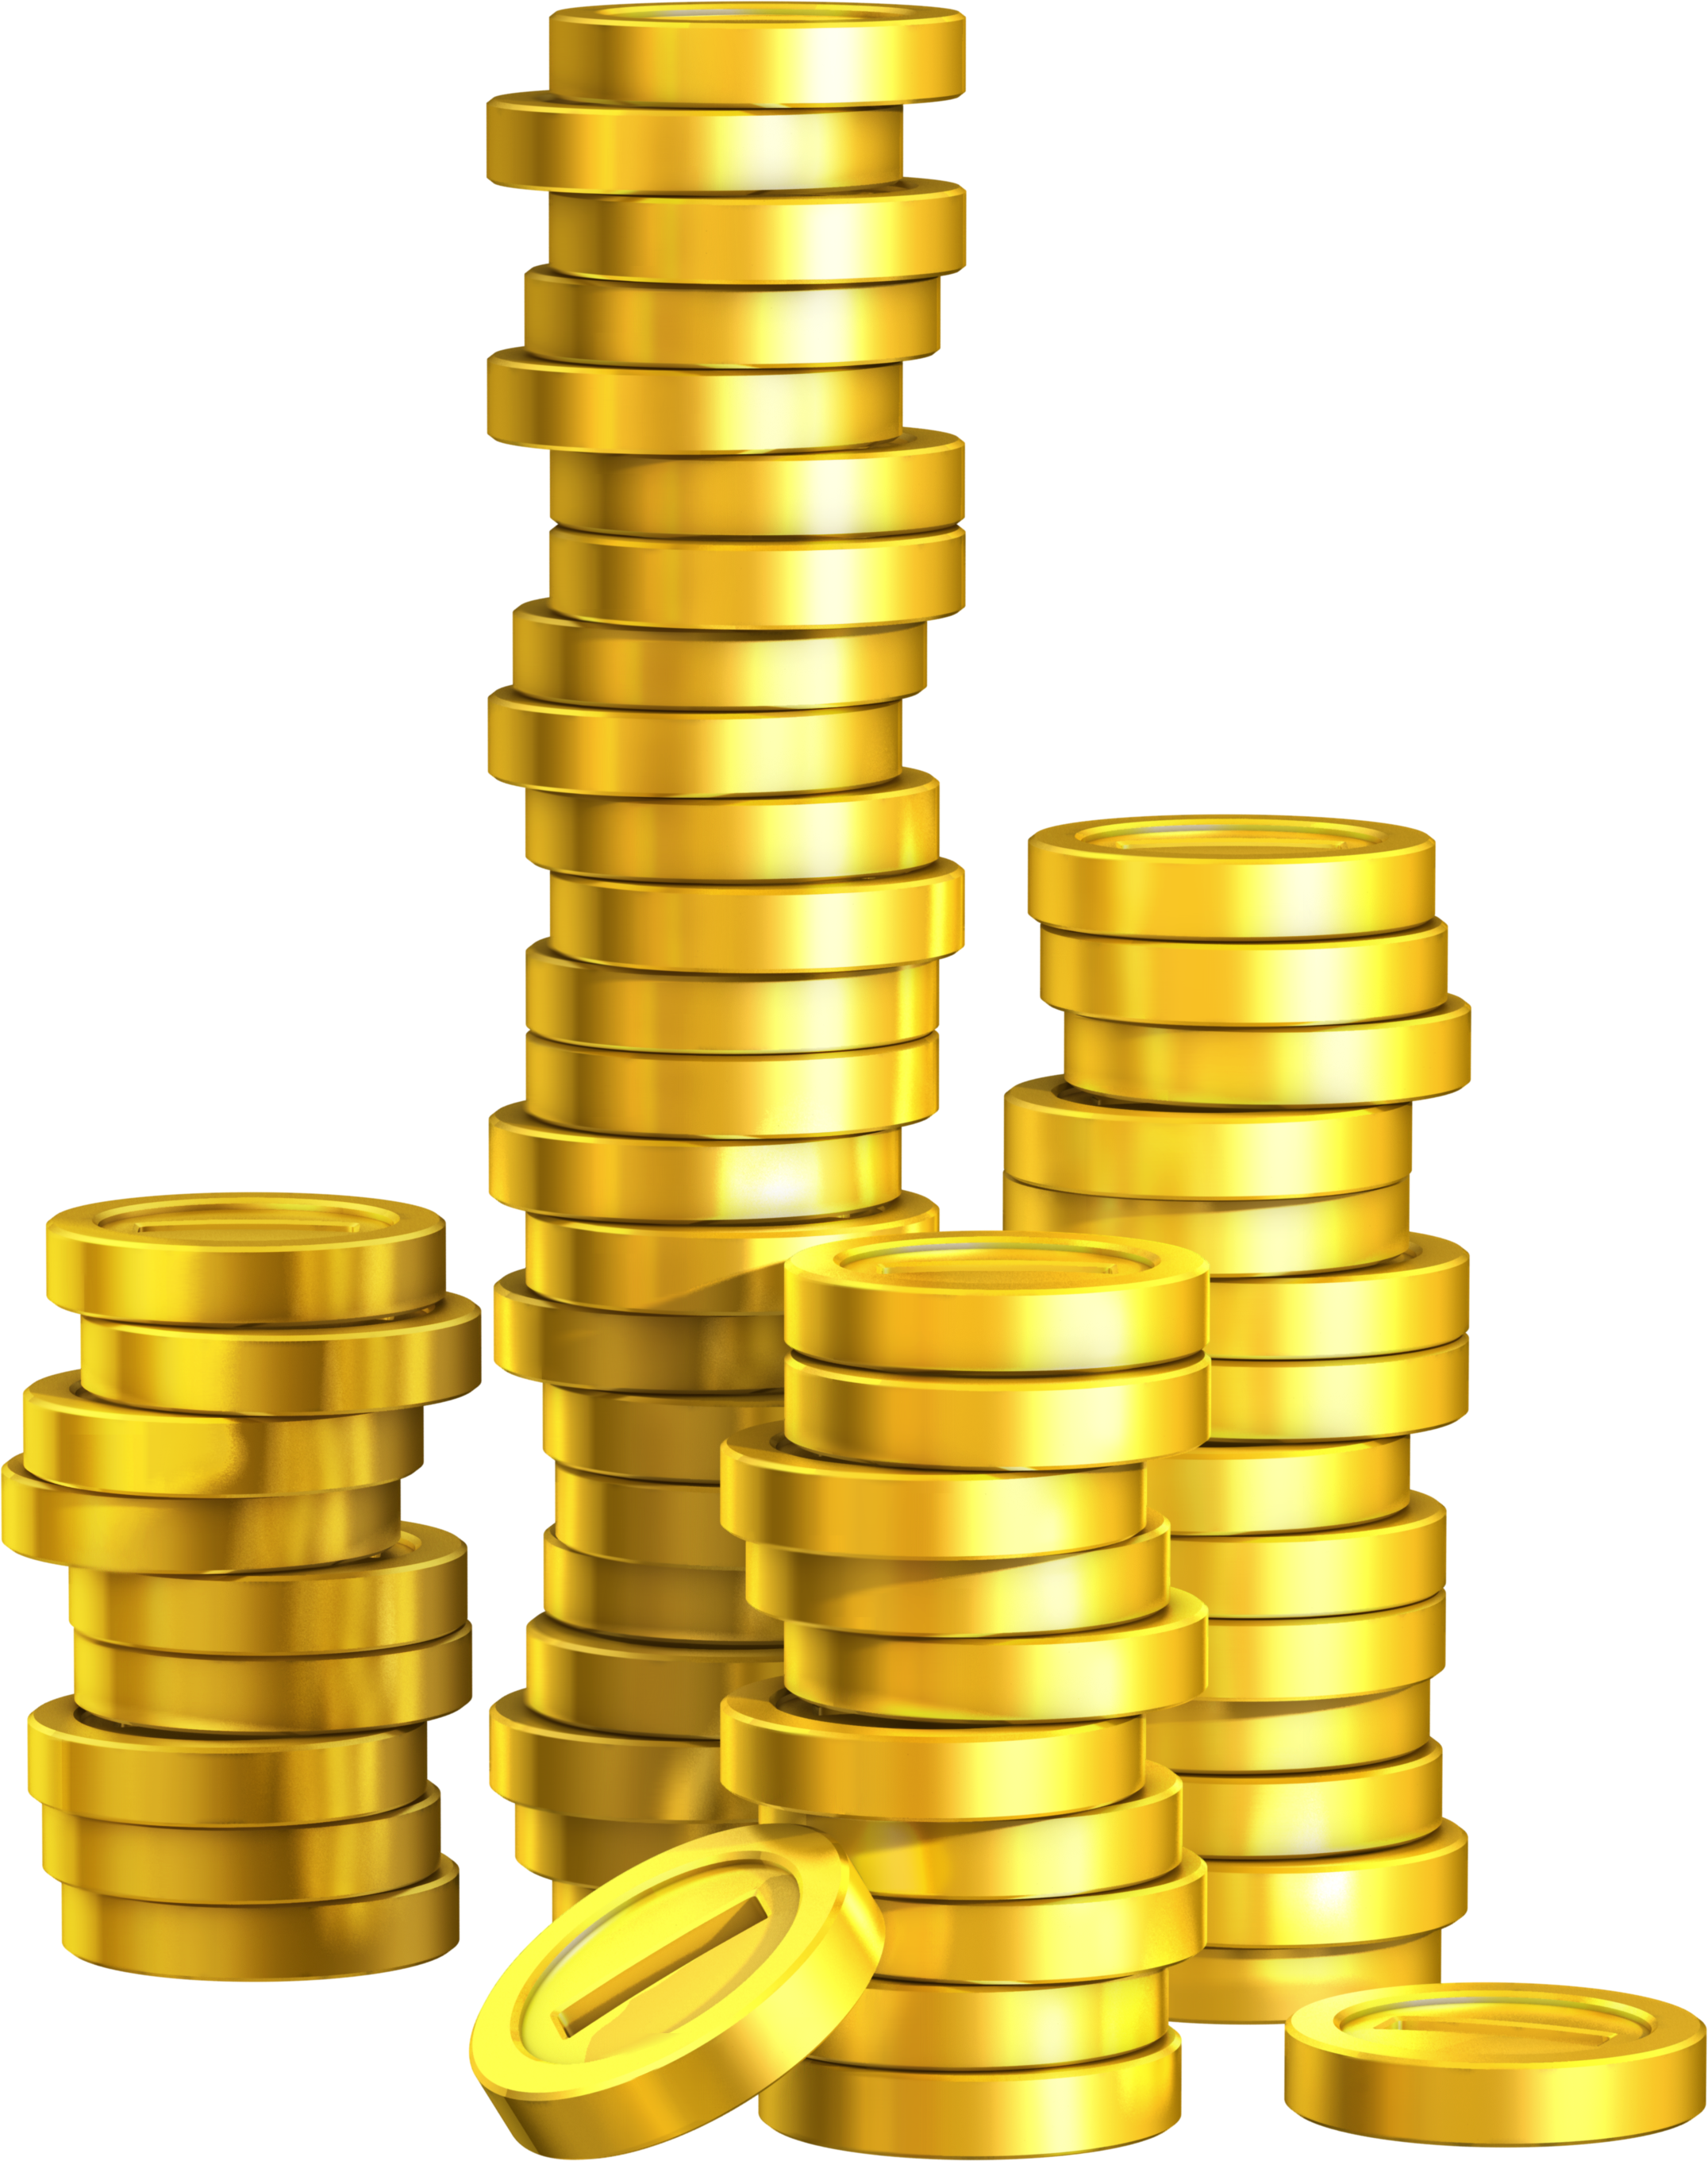 trends for stack gold coins png cliparts #16594